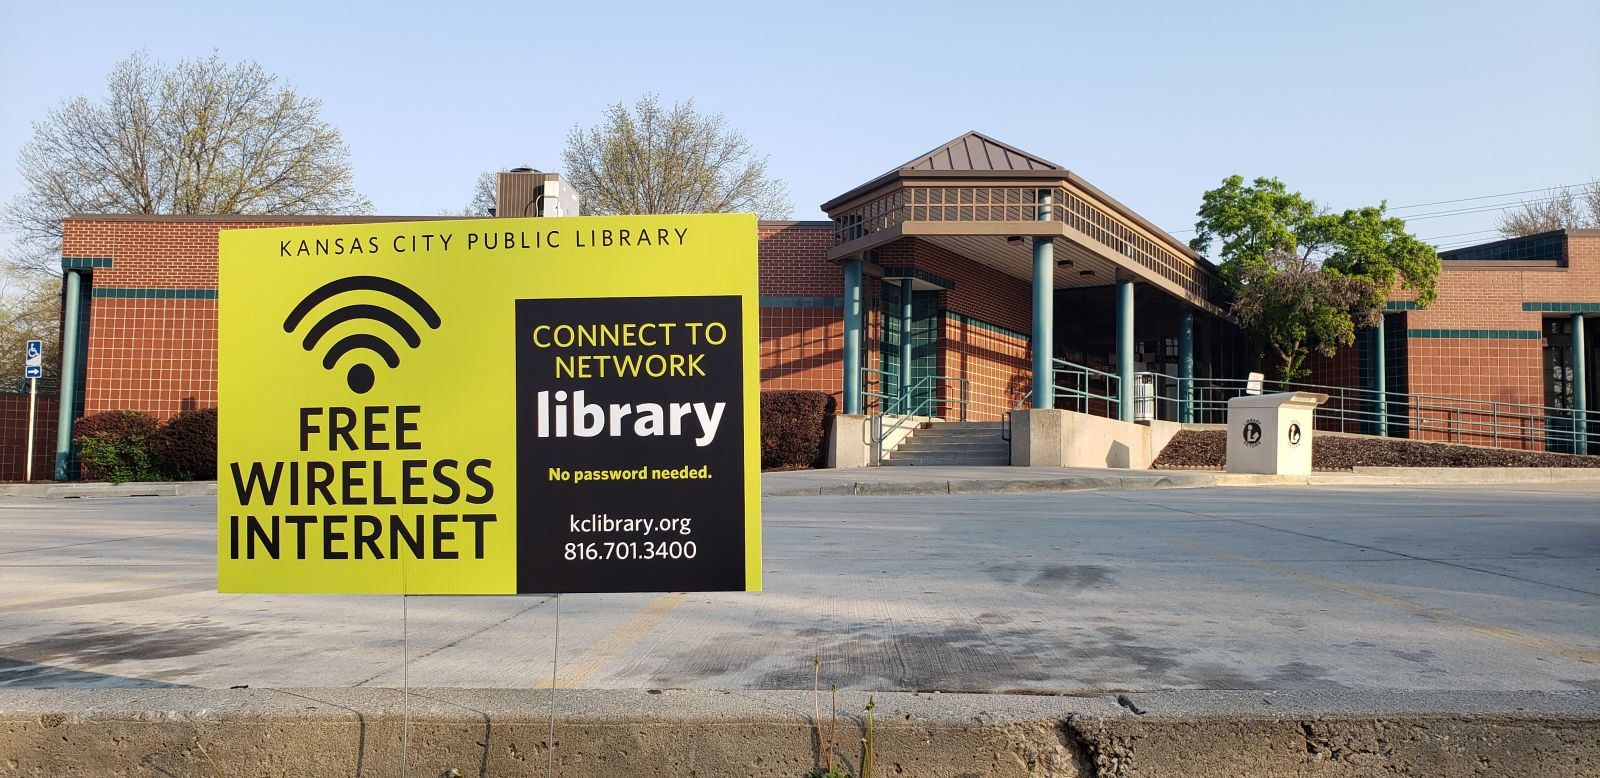 Image of WiFi yard signs at Library location